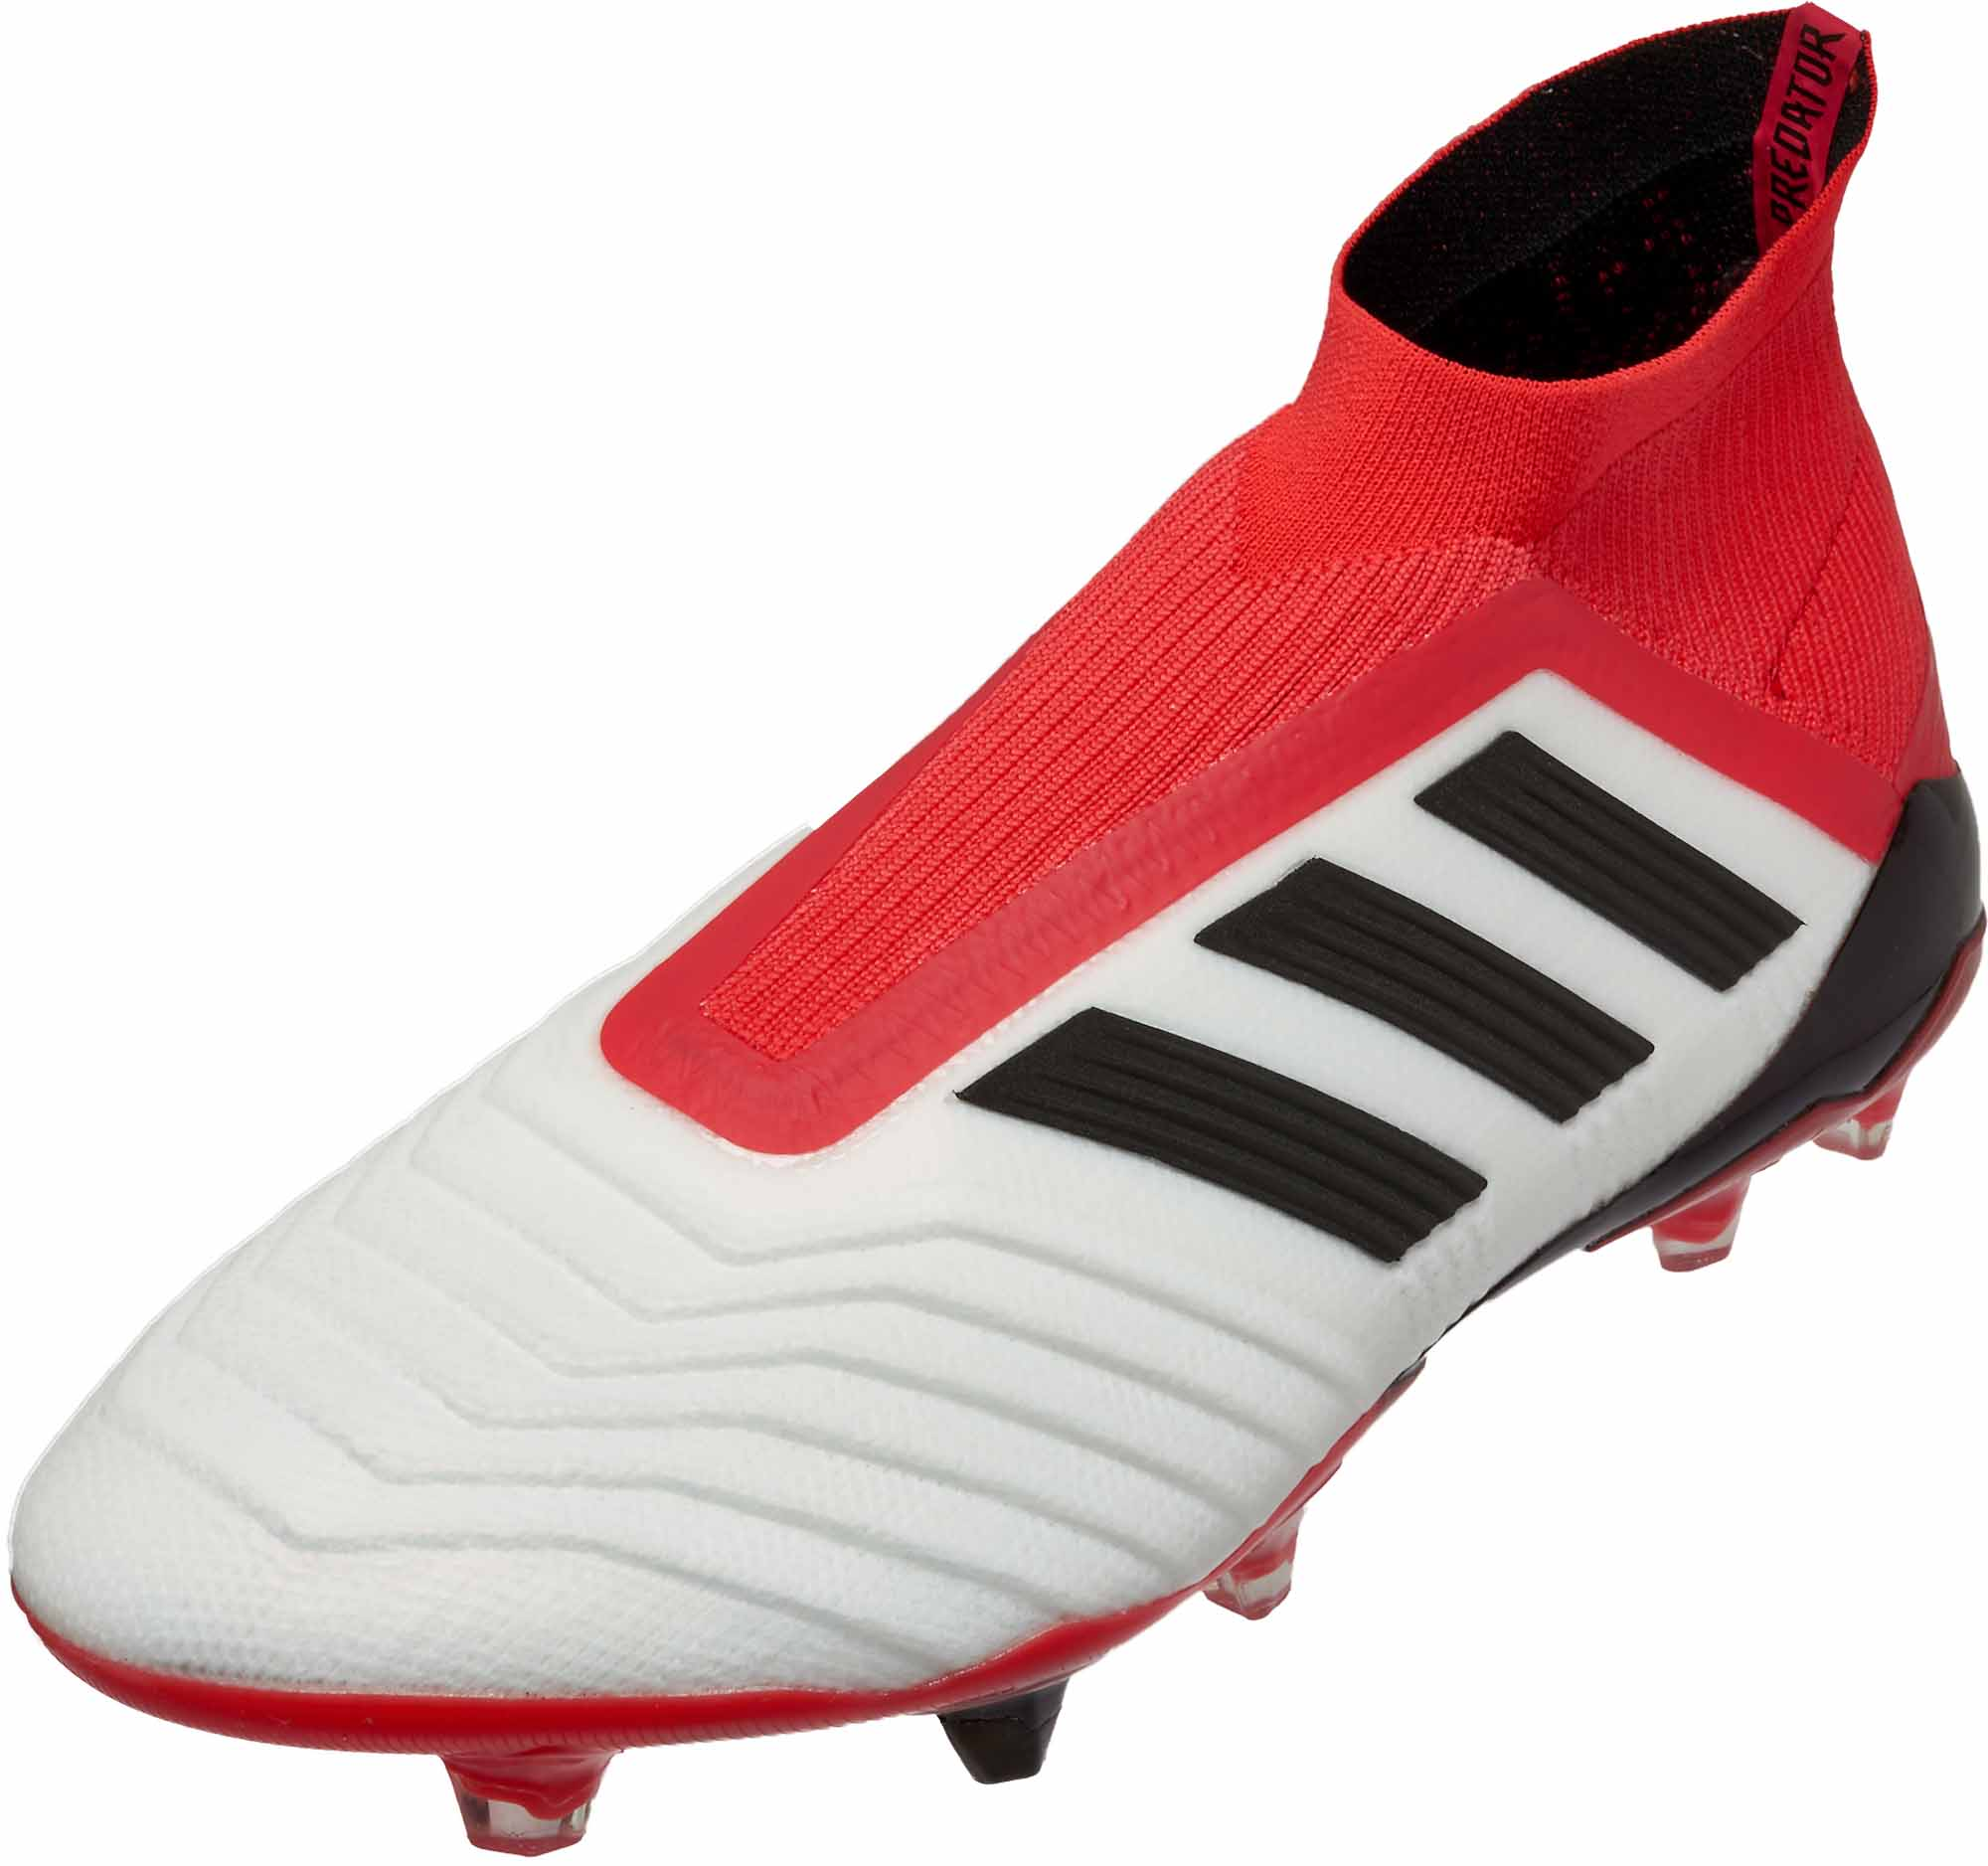 Cheap Adidas Football Shoes Online